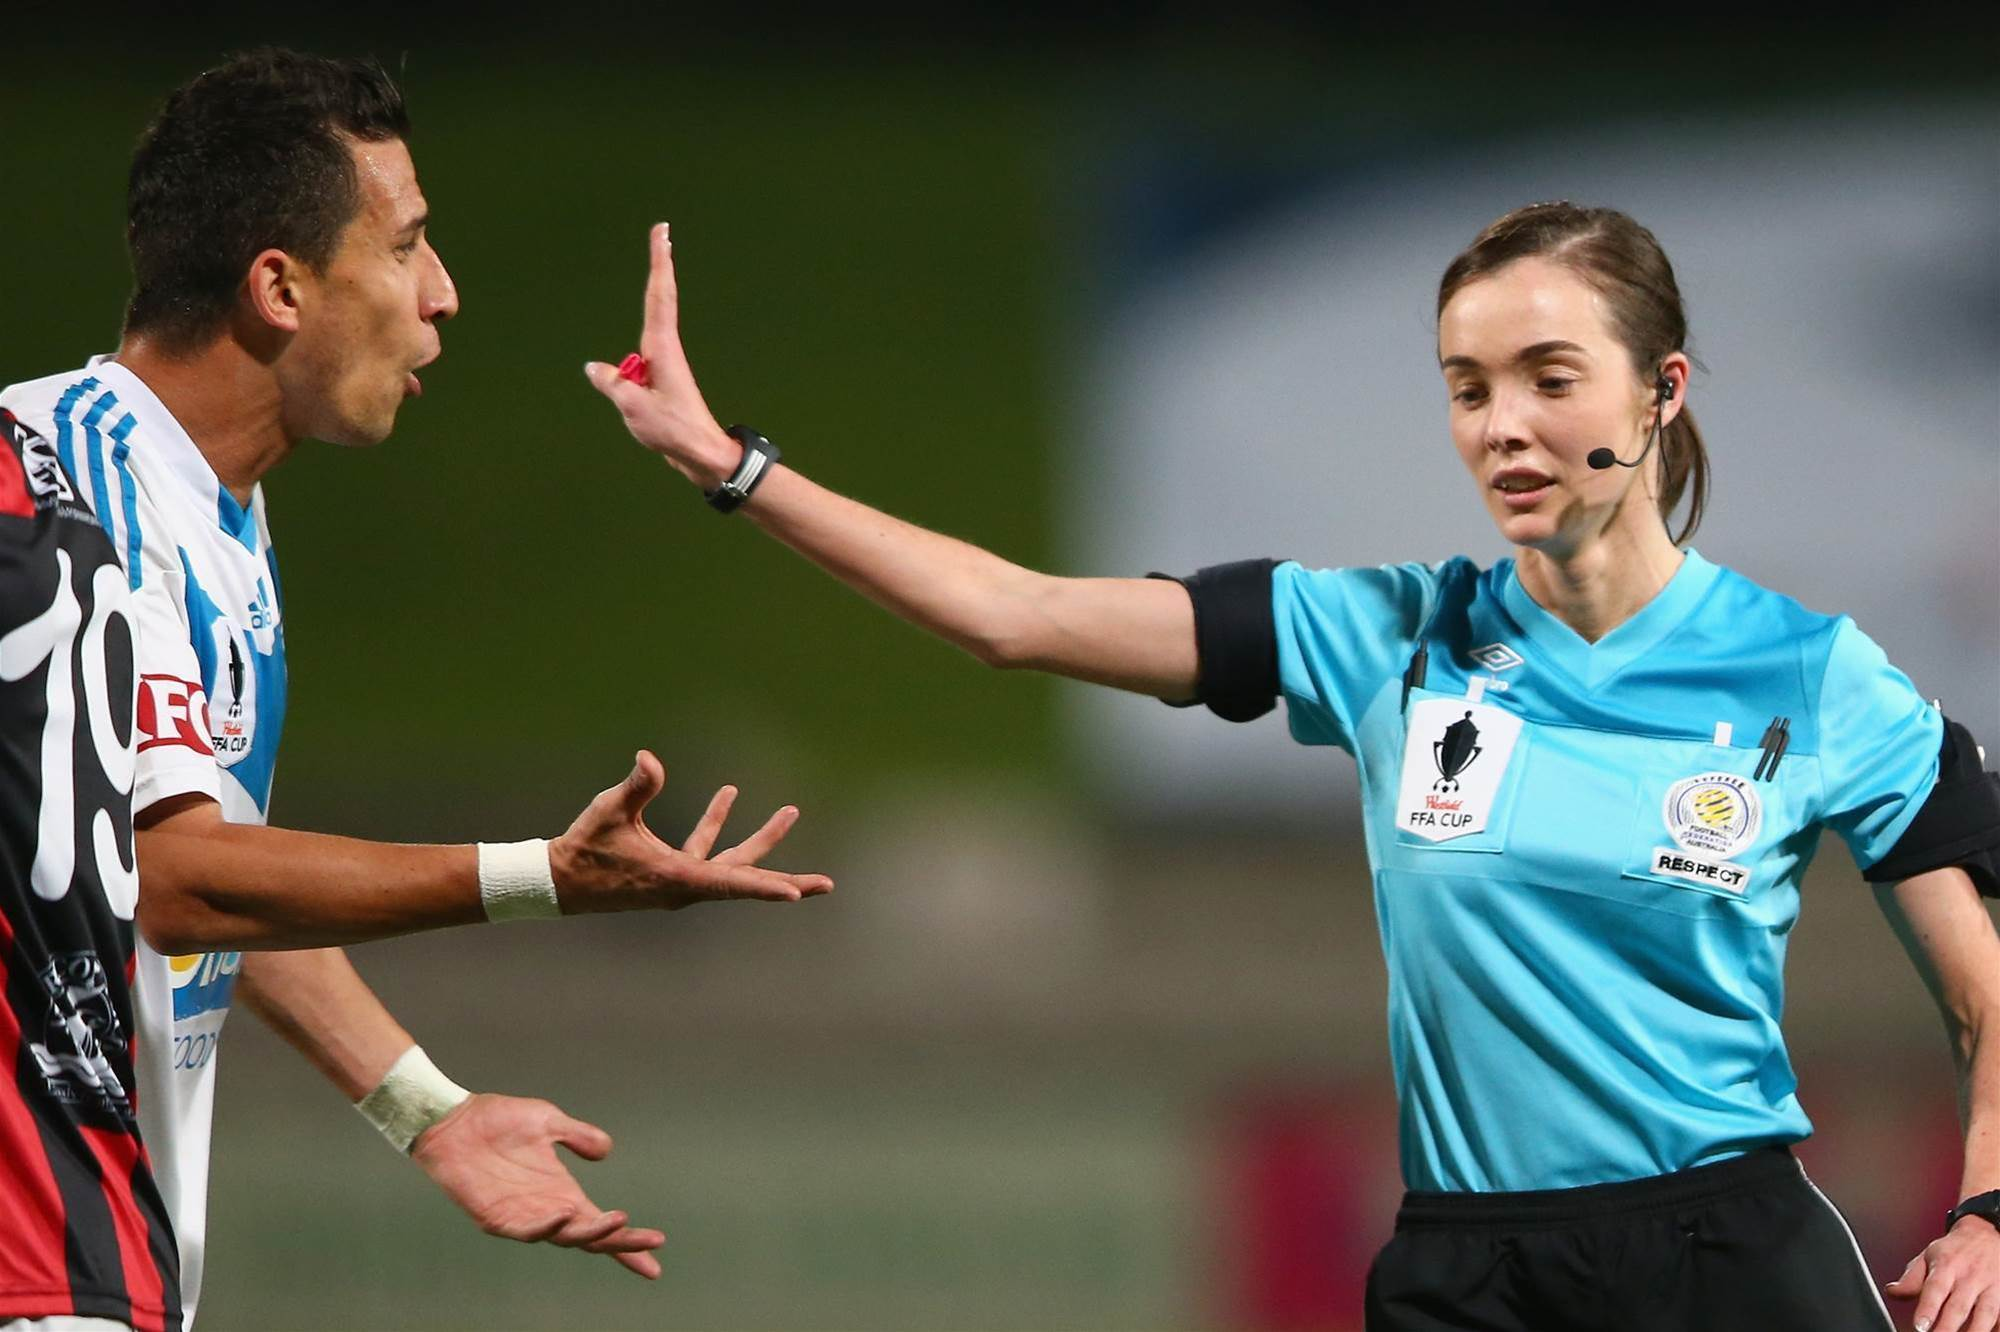 Patterson edges closer to A-League referee berth